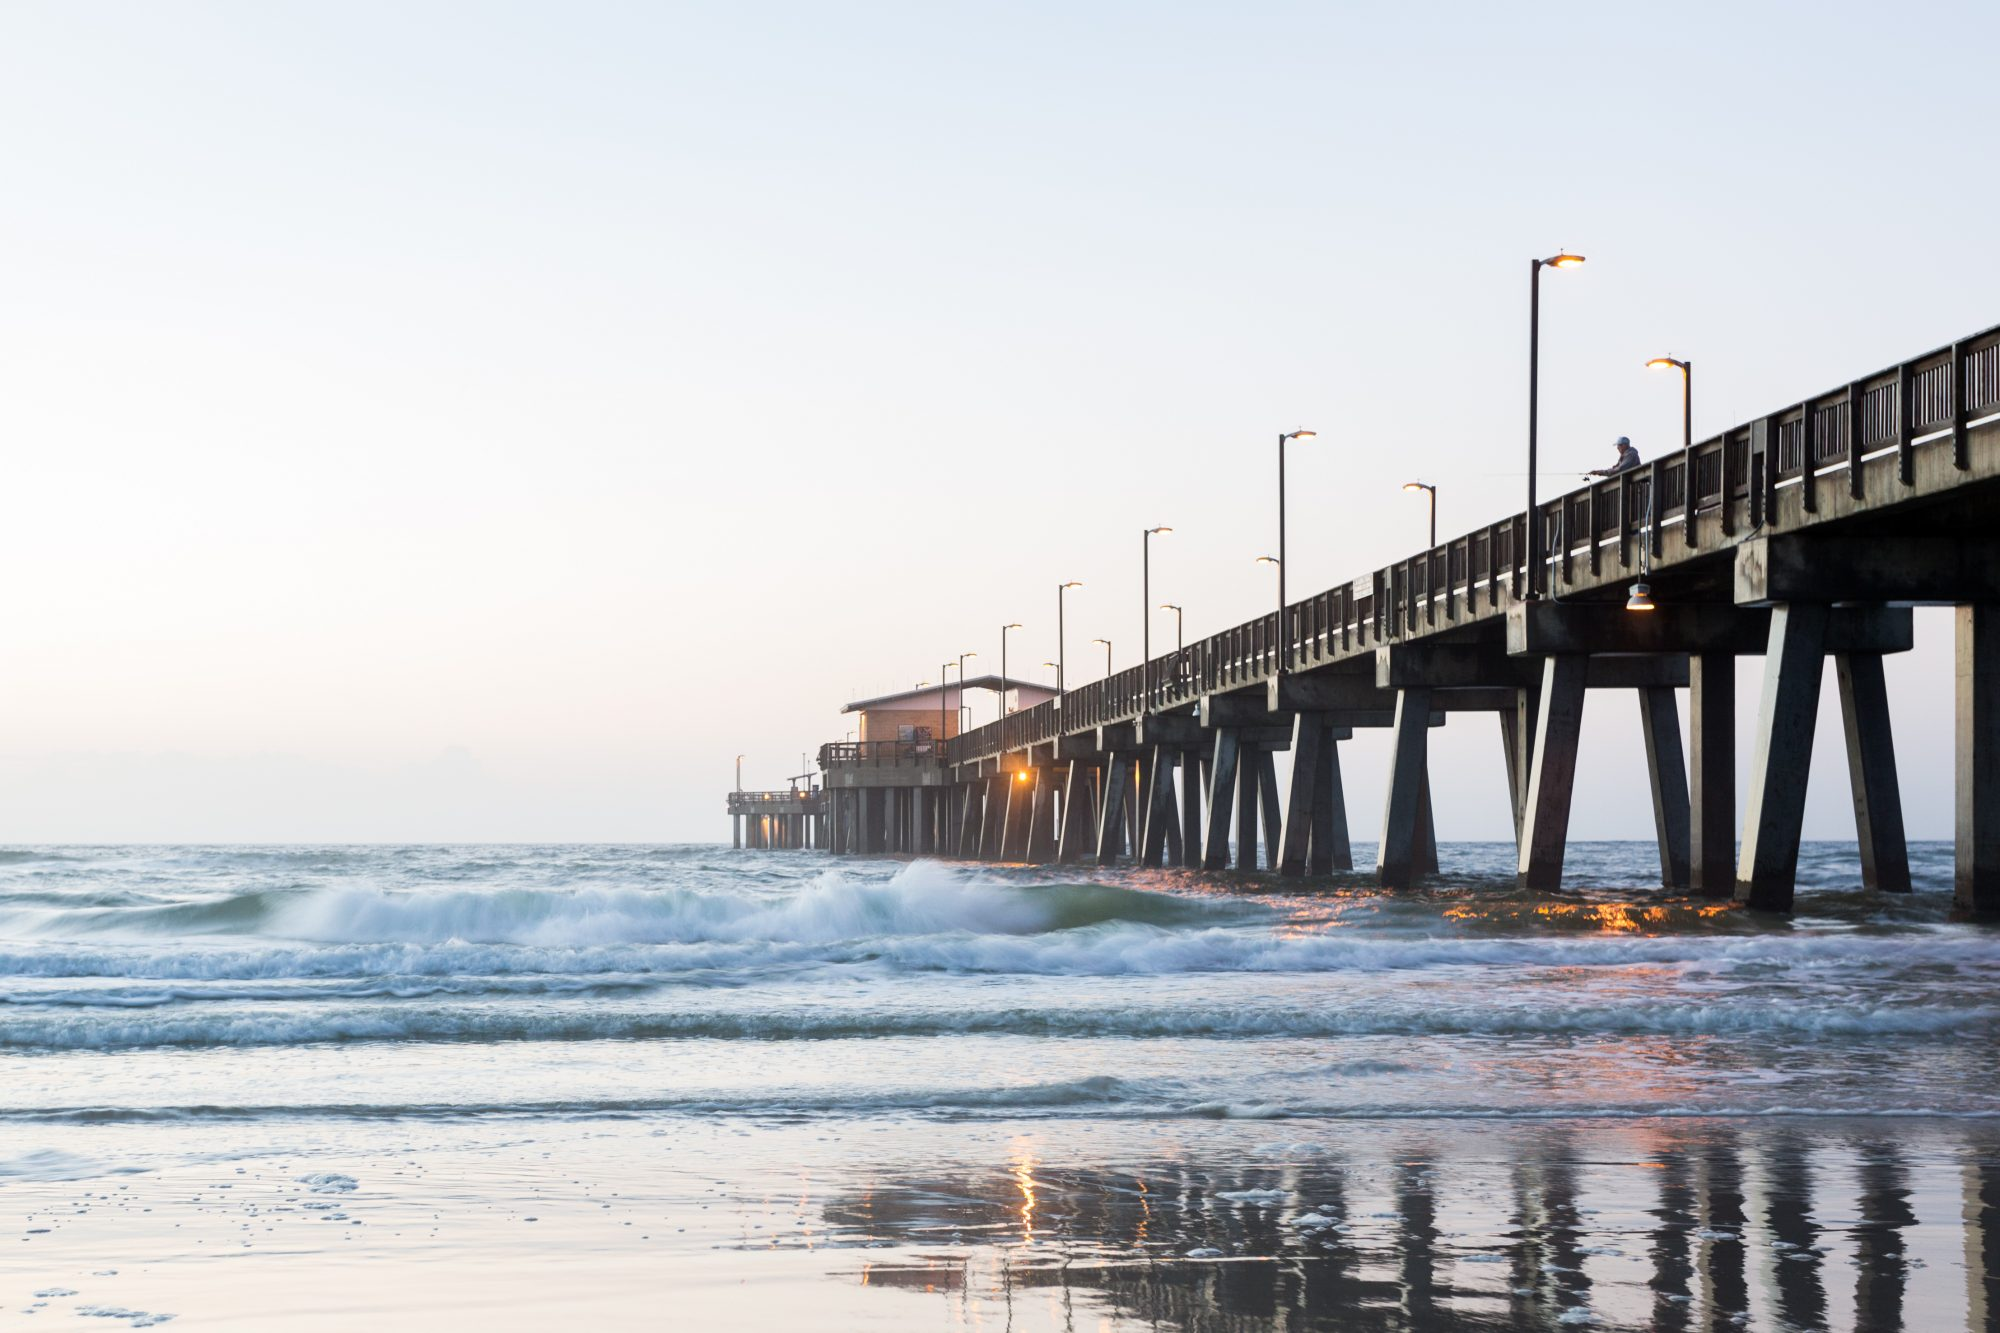 7. Gulf Shores, Alabama